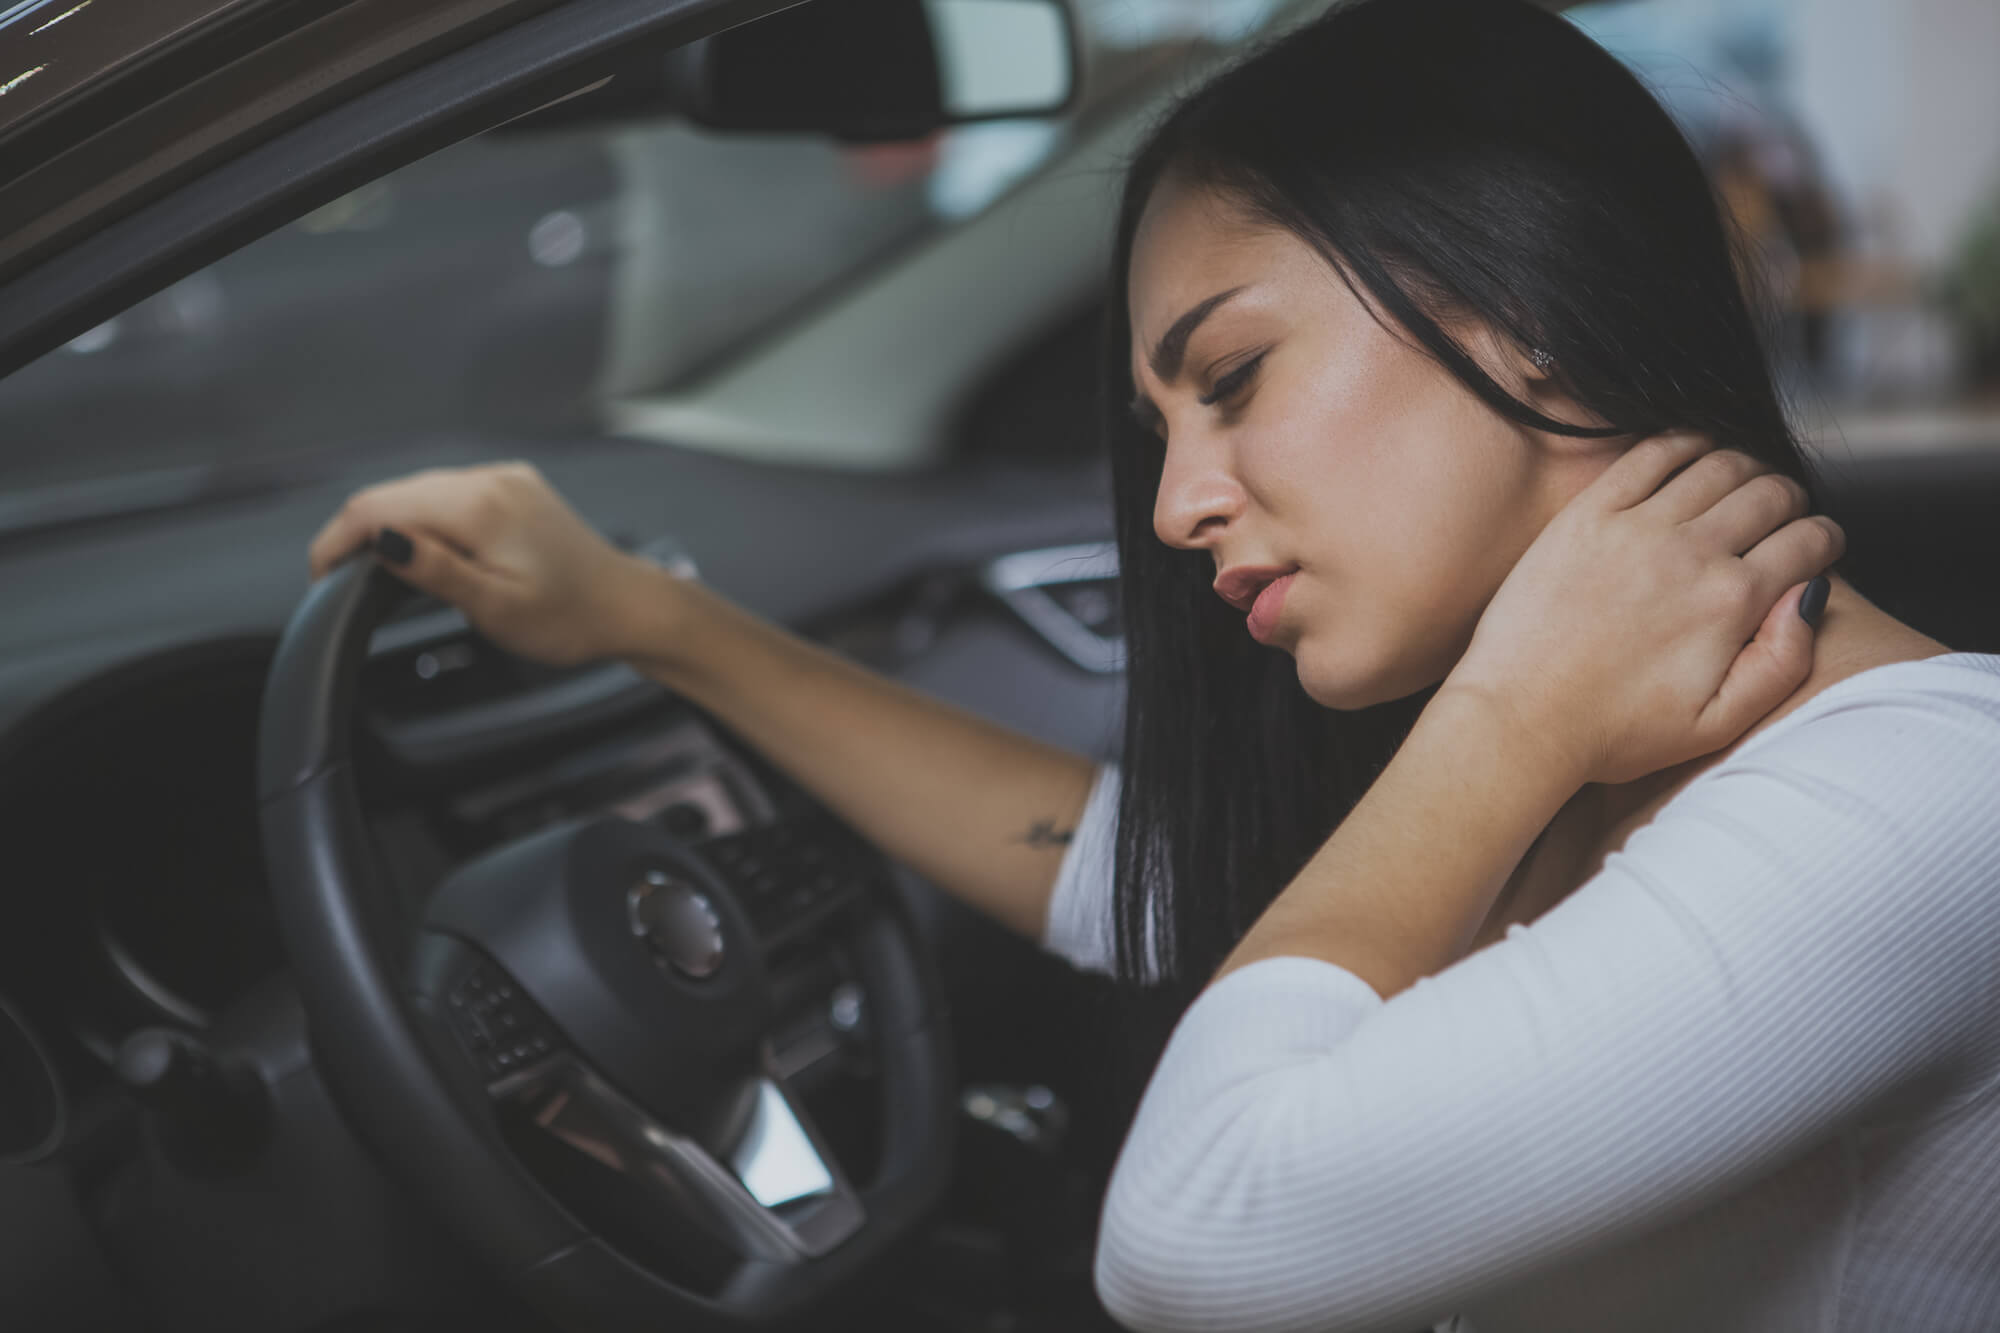 Young woman in vehicle holding back of her neck in discomfort